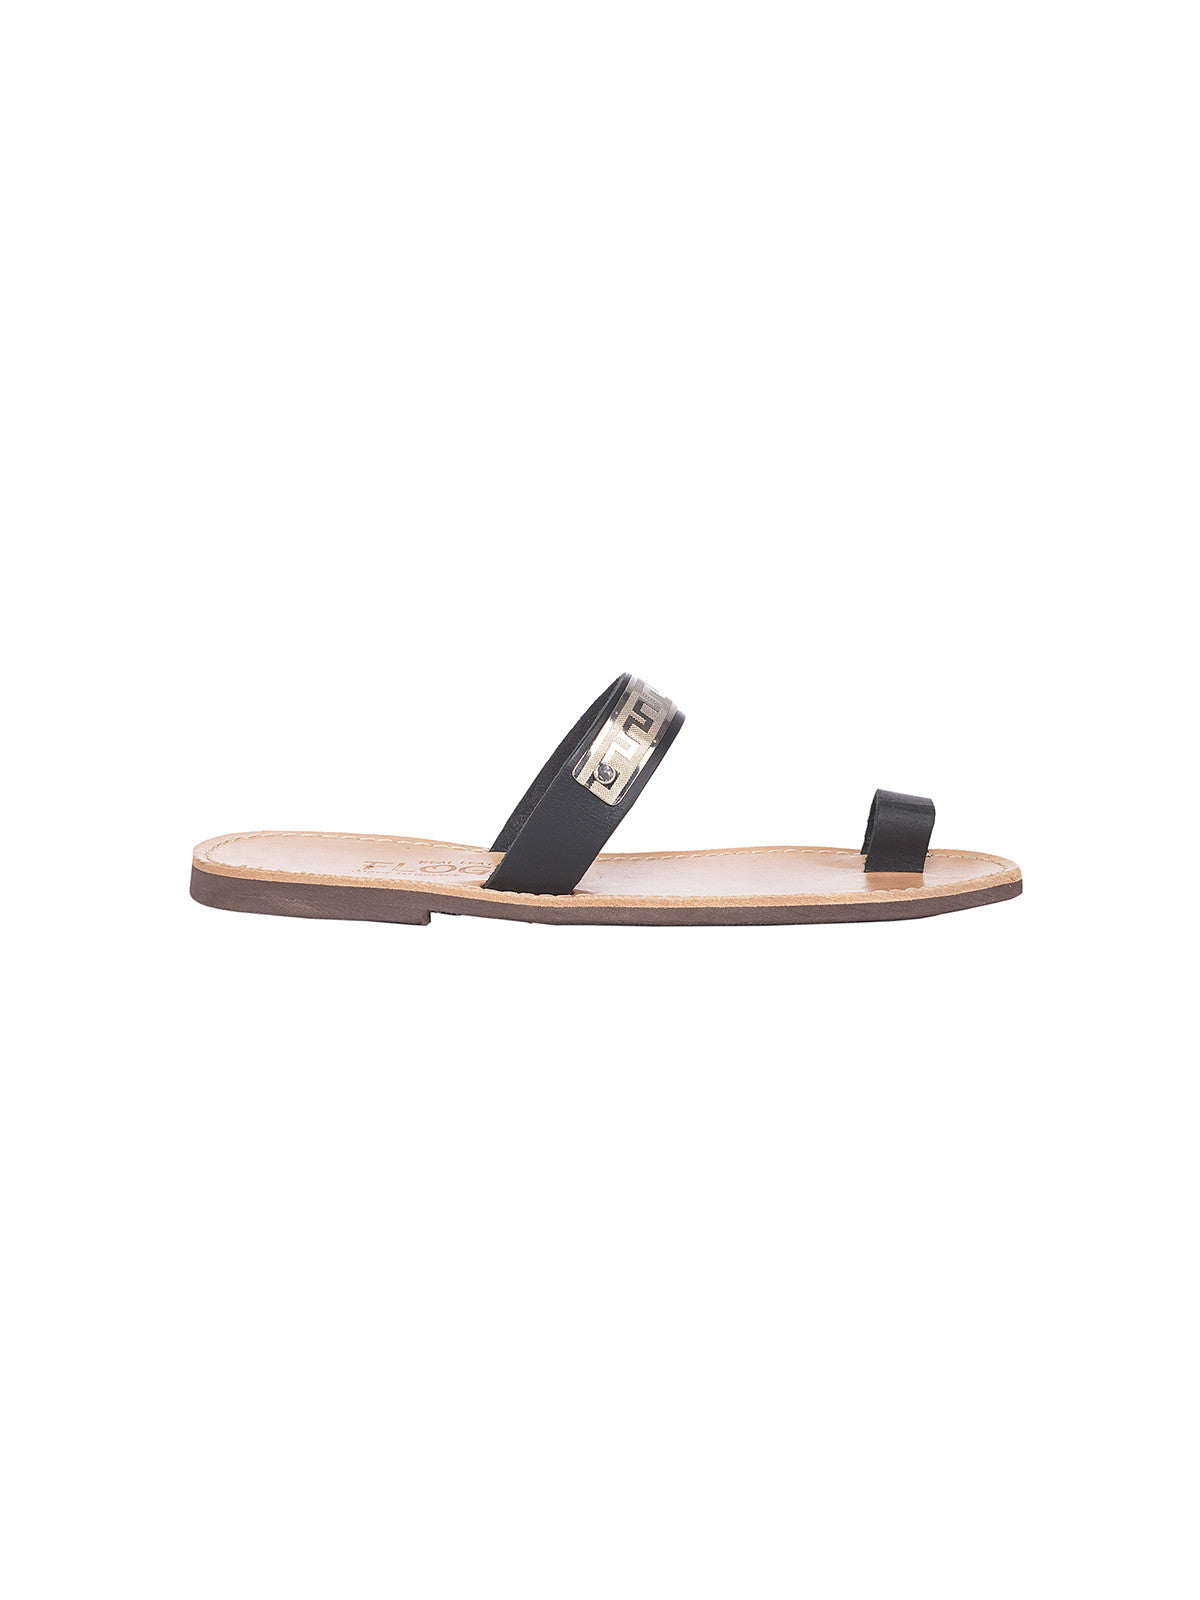 Ariadne Greek Sandals